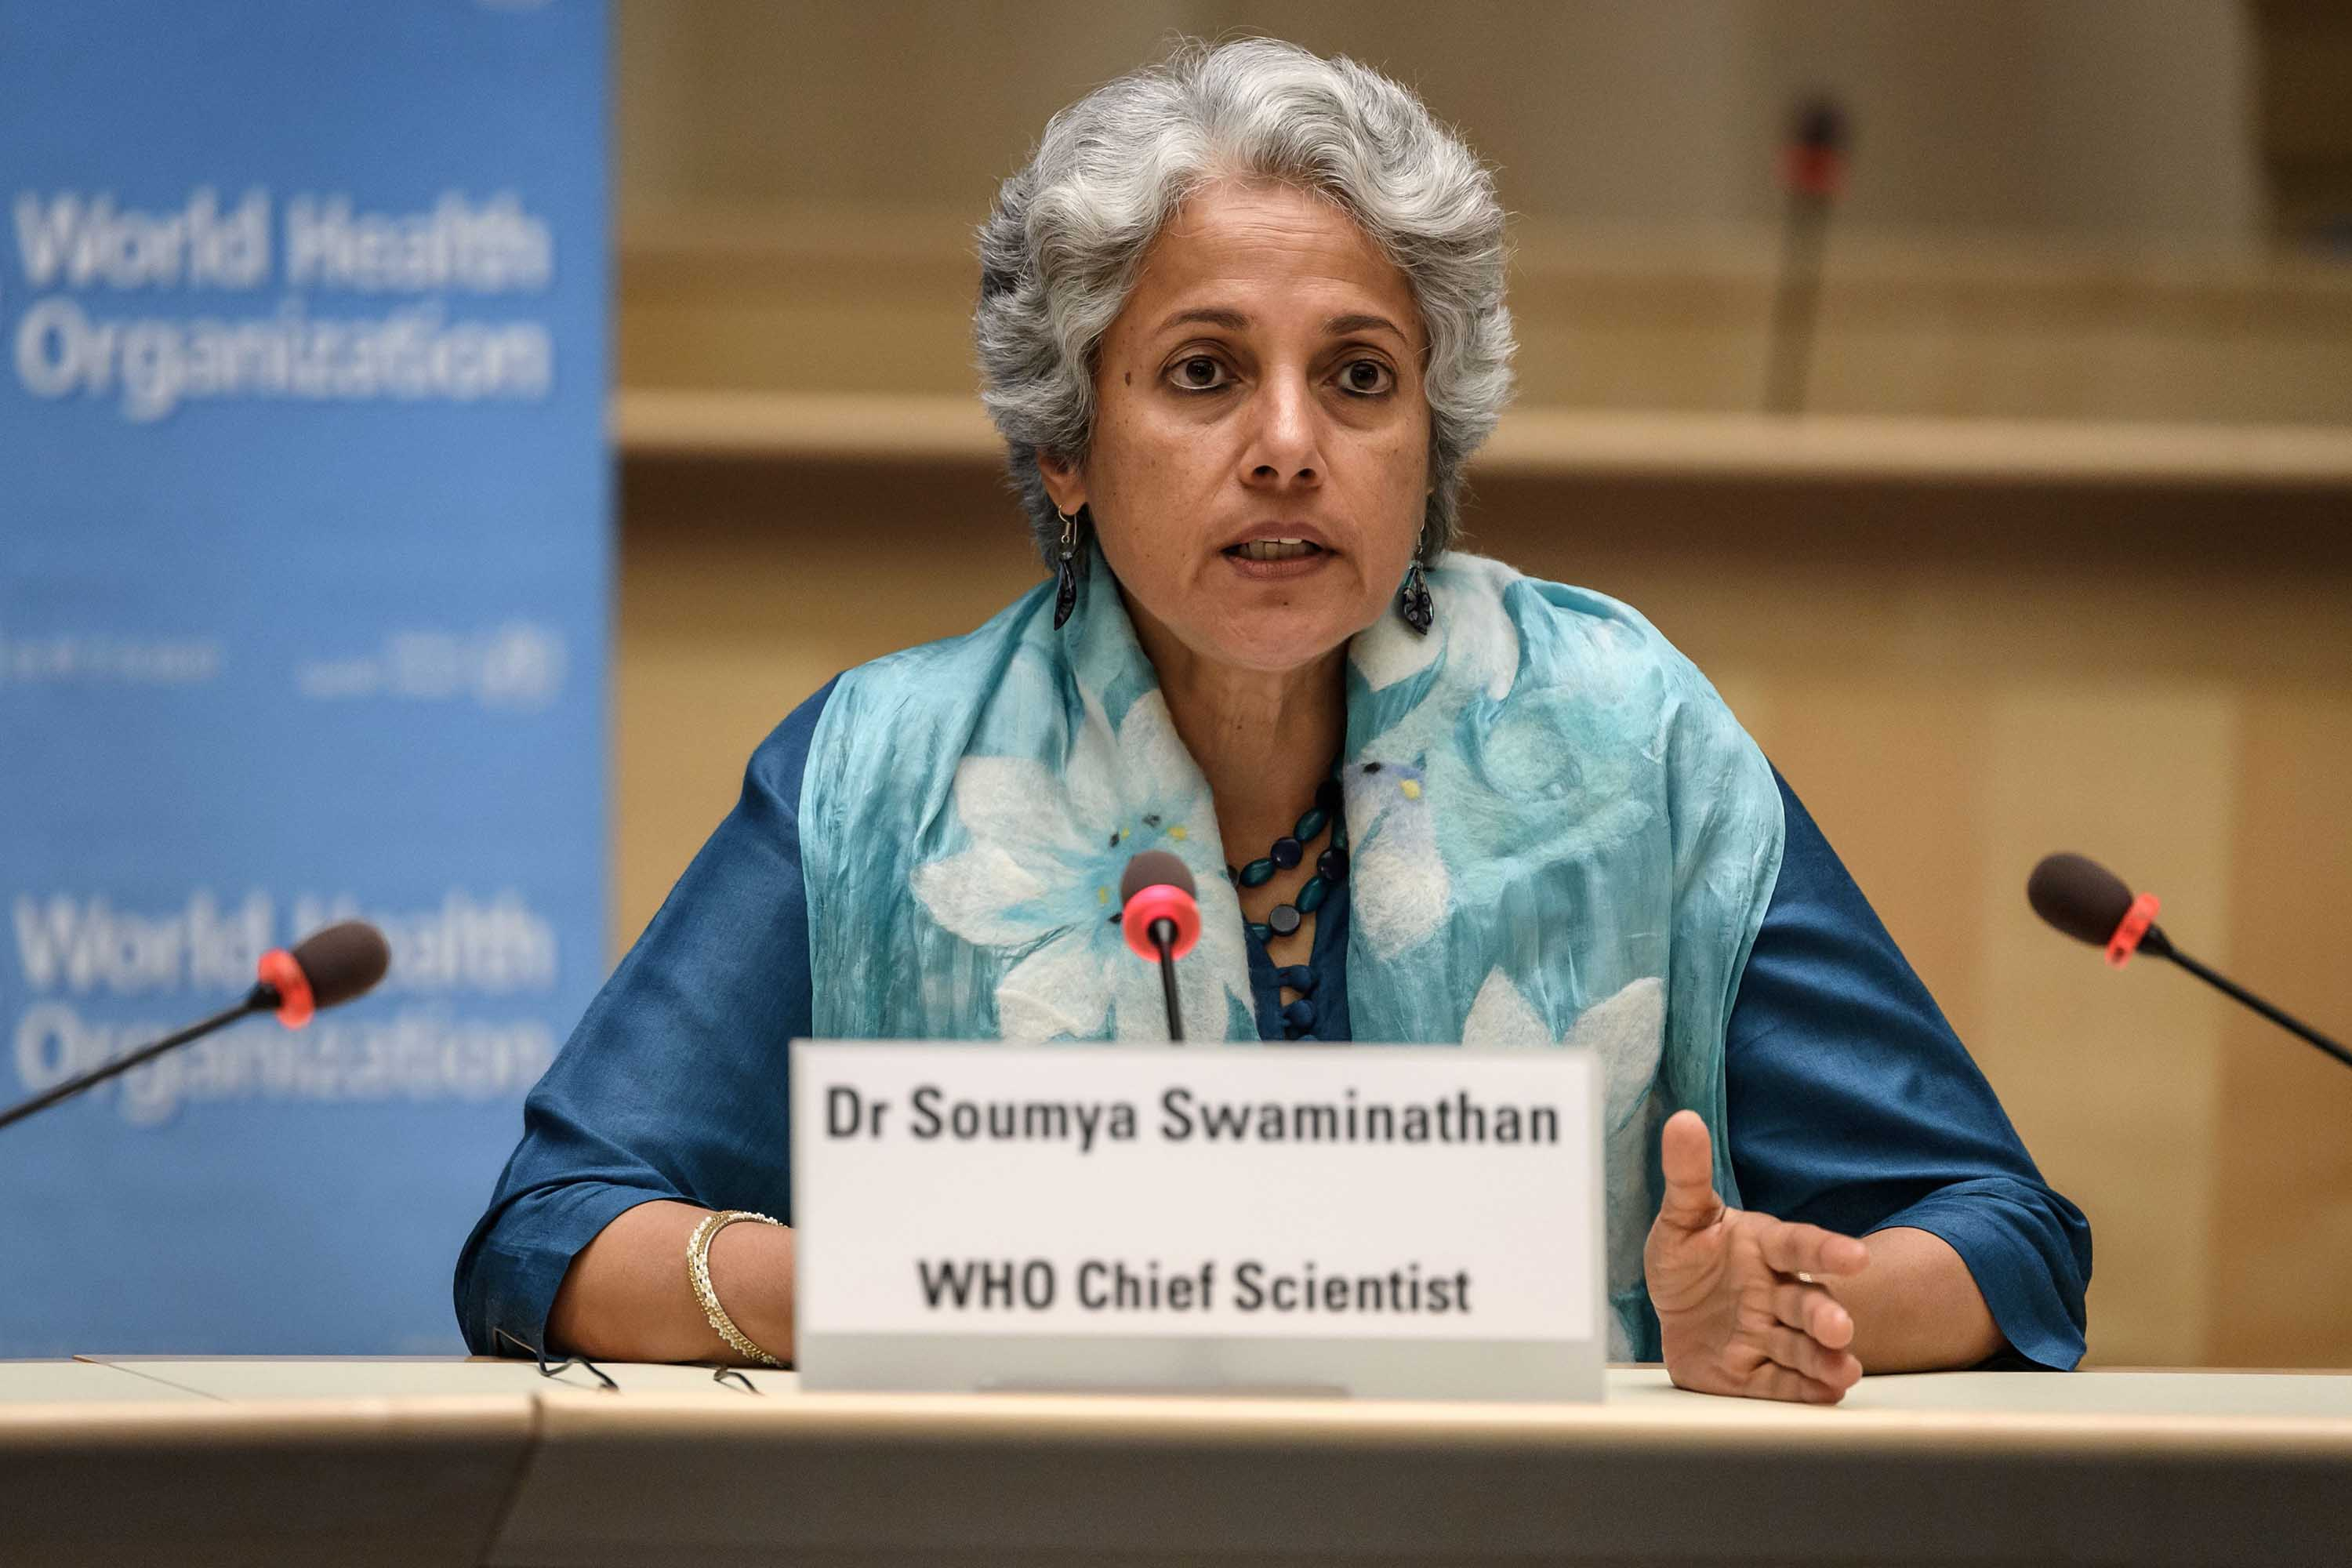 World Health Organization (WHO) Chief Scientist Soumya Swaminathan is pictured at a press conference on July 3, at the WHO headquarters in Geneva.